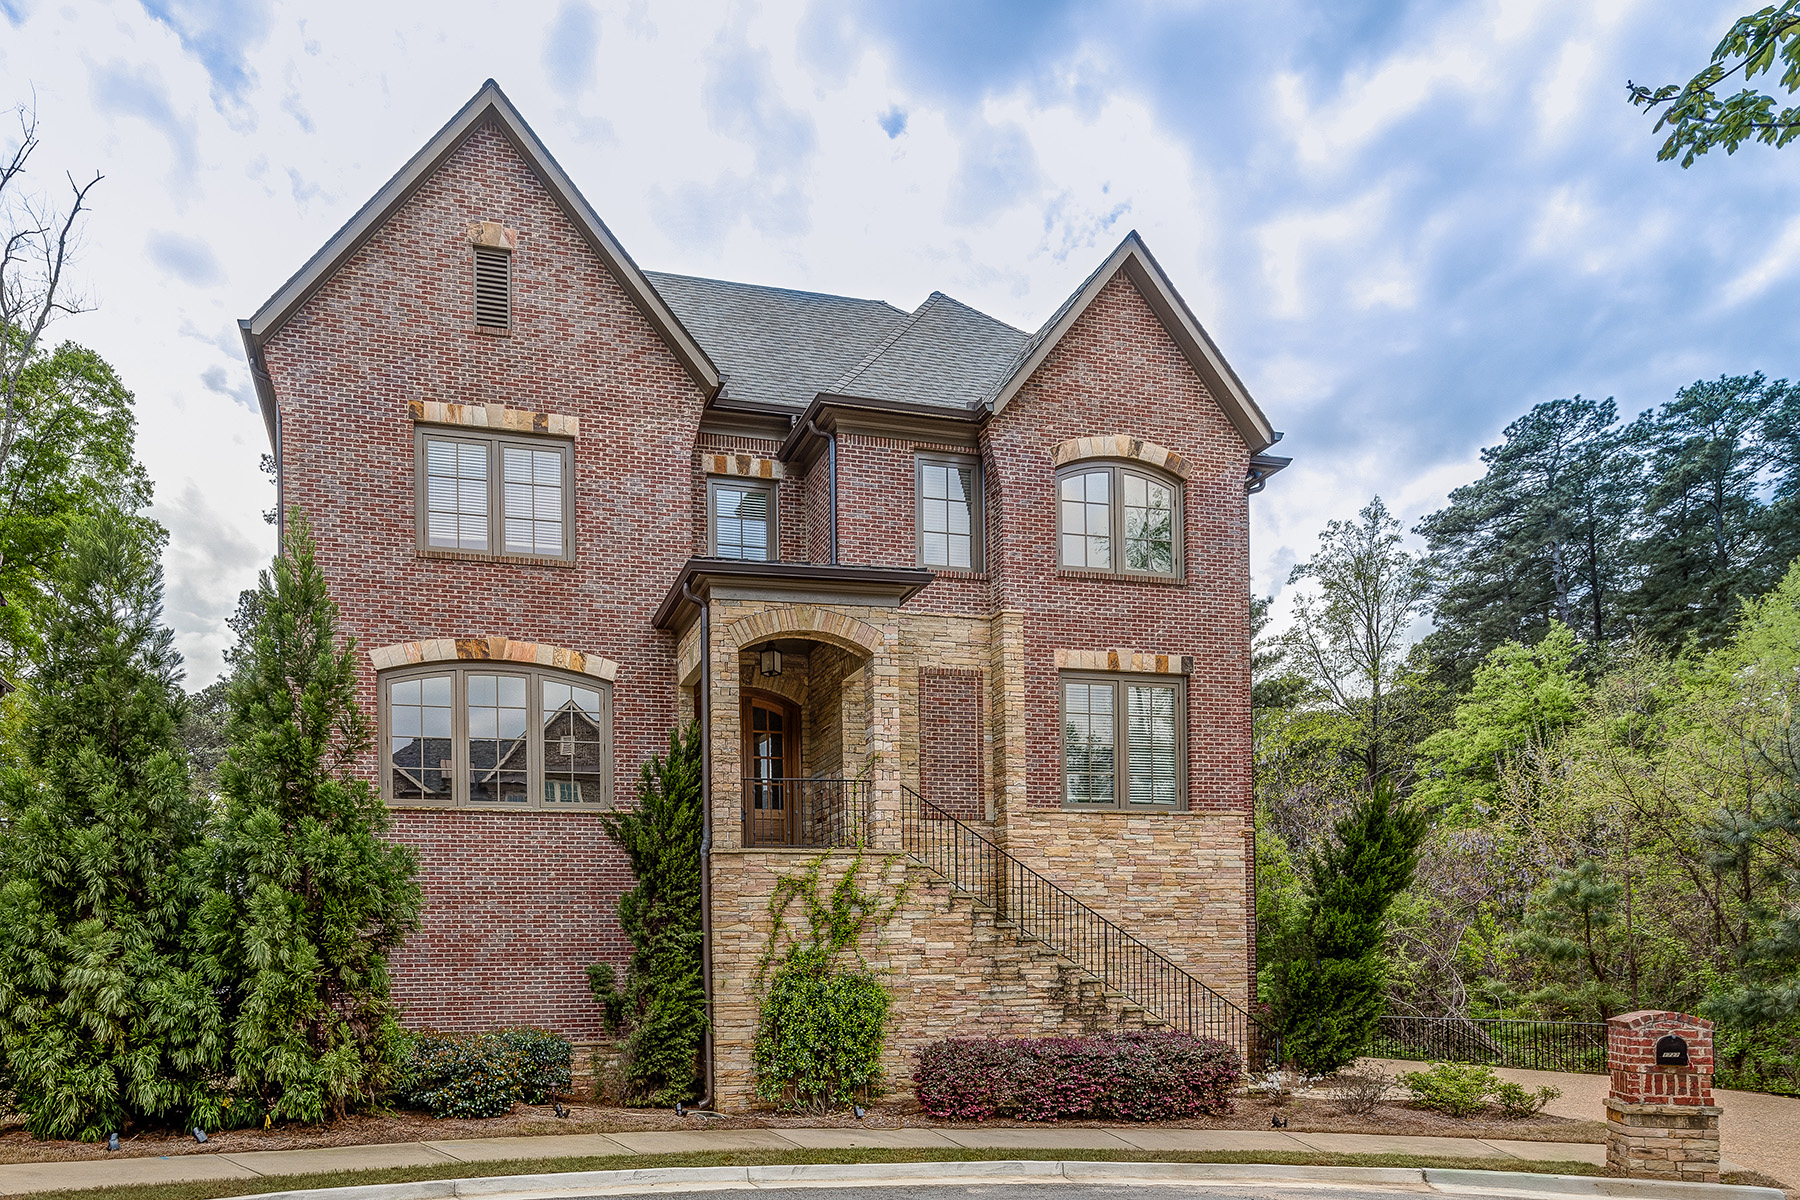 Single Family Home for Sale at Exceptional Executive Home On A Cul-De-Sac In Buckhead Preserve 1727 Buckhead Ln Brookhaven, Georgia 30324 United States